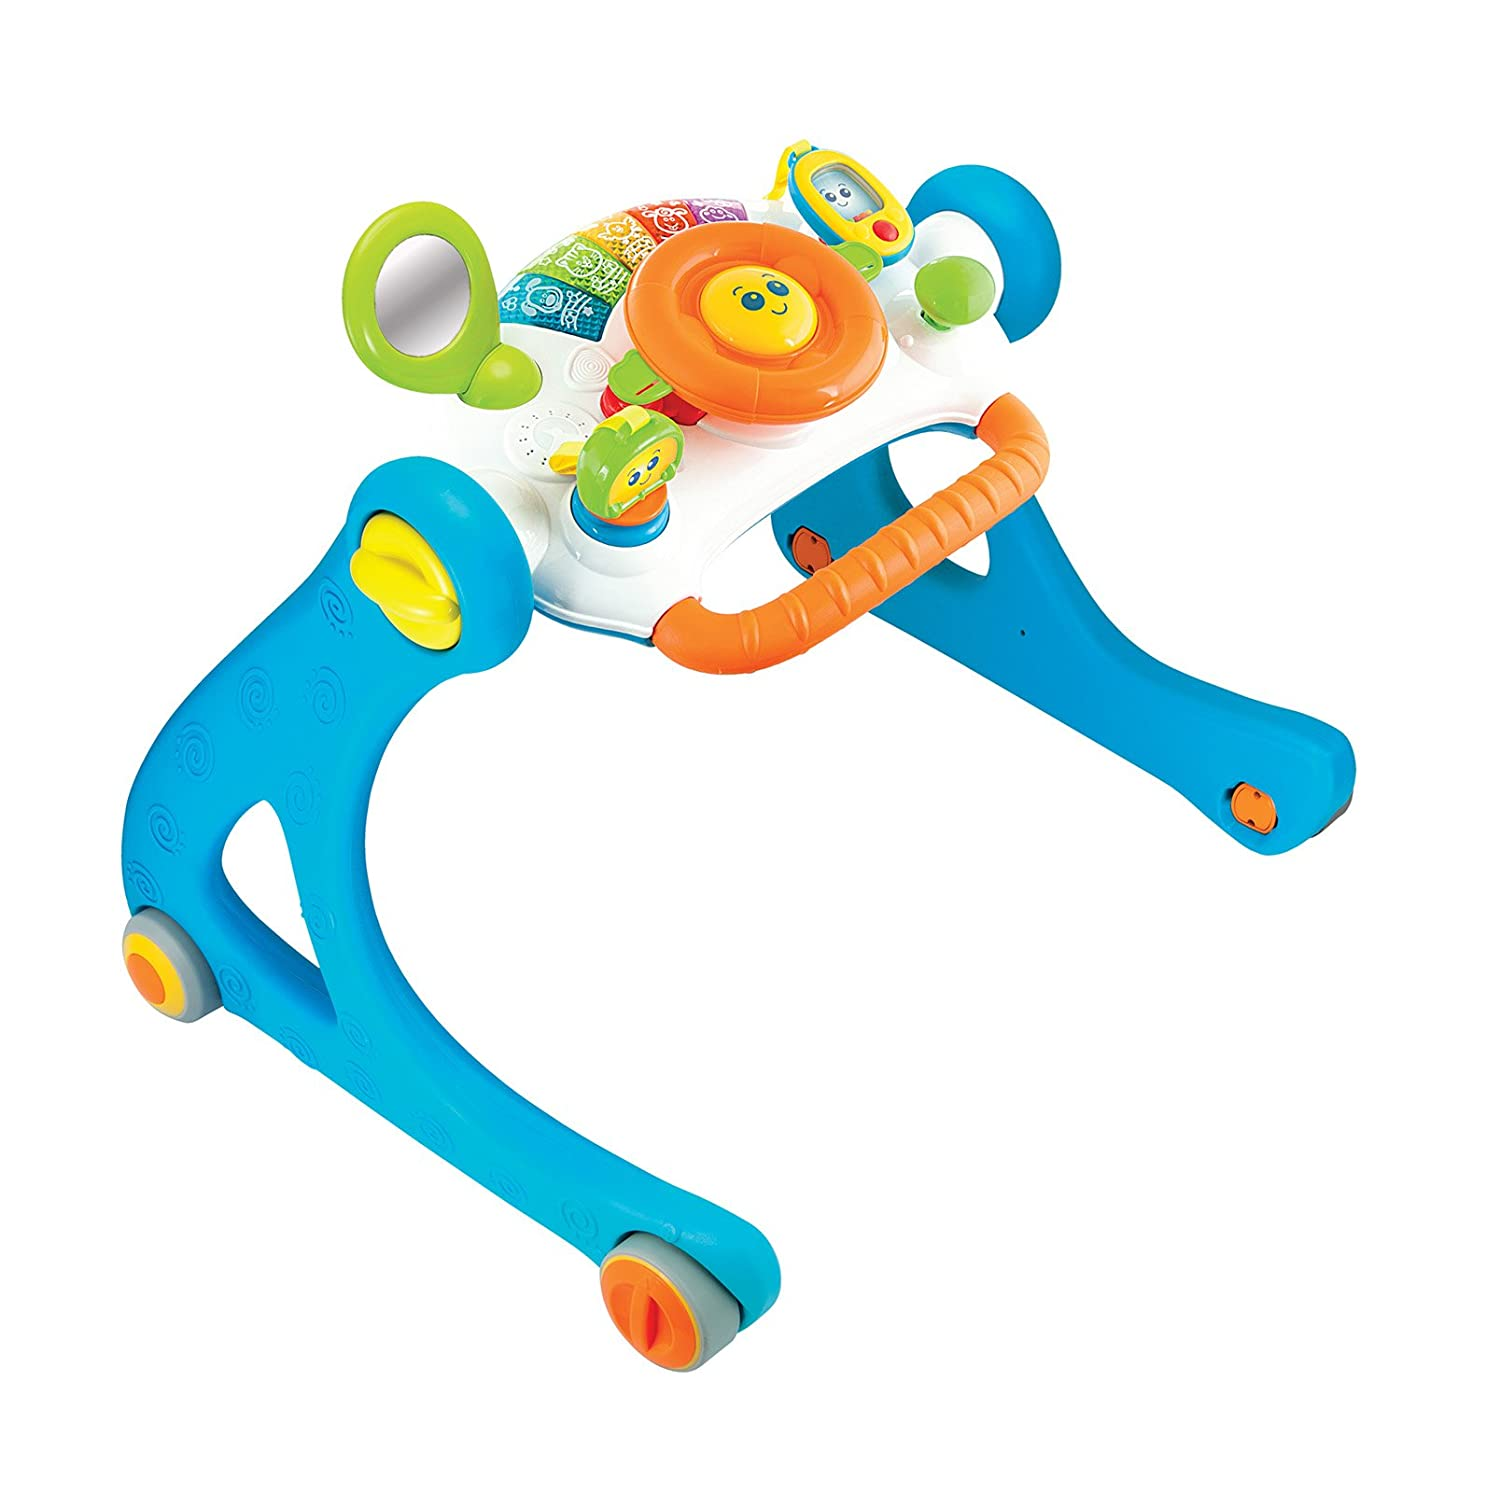 Amazon.com : WinFun 5 In 1 Driver Play Gym Walker, Multi ...